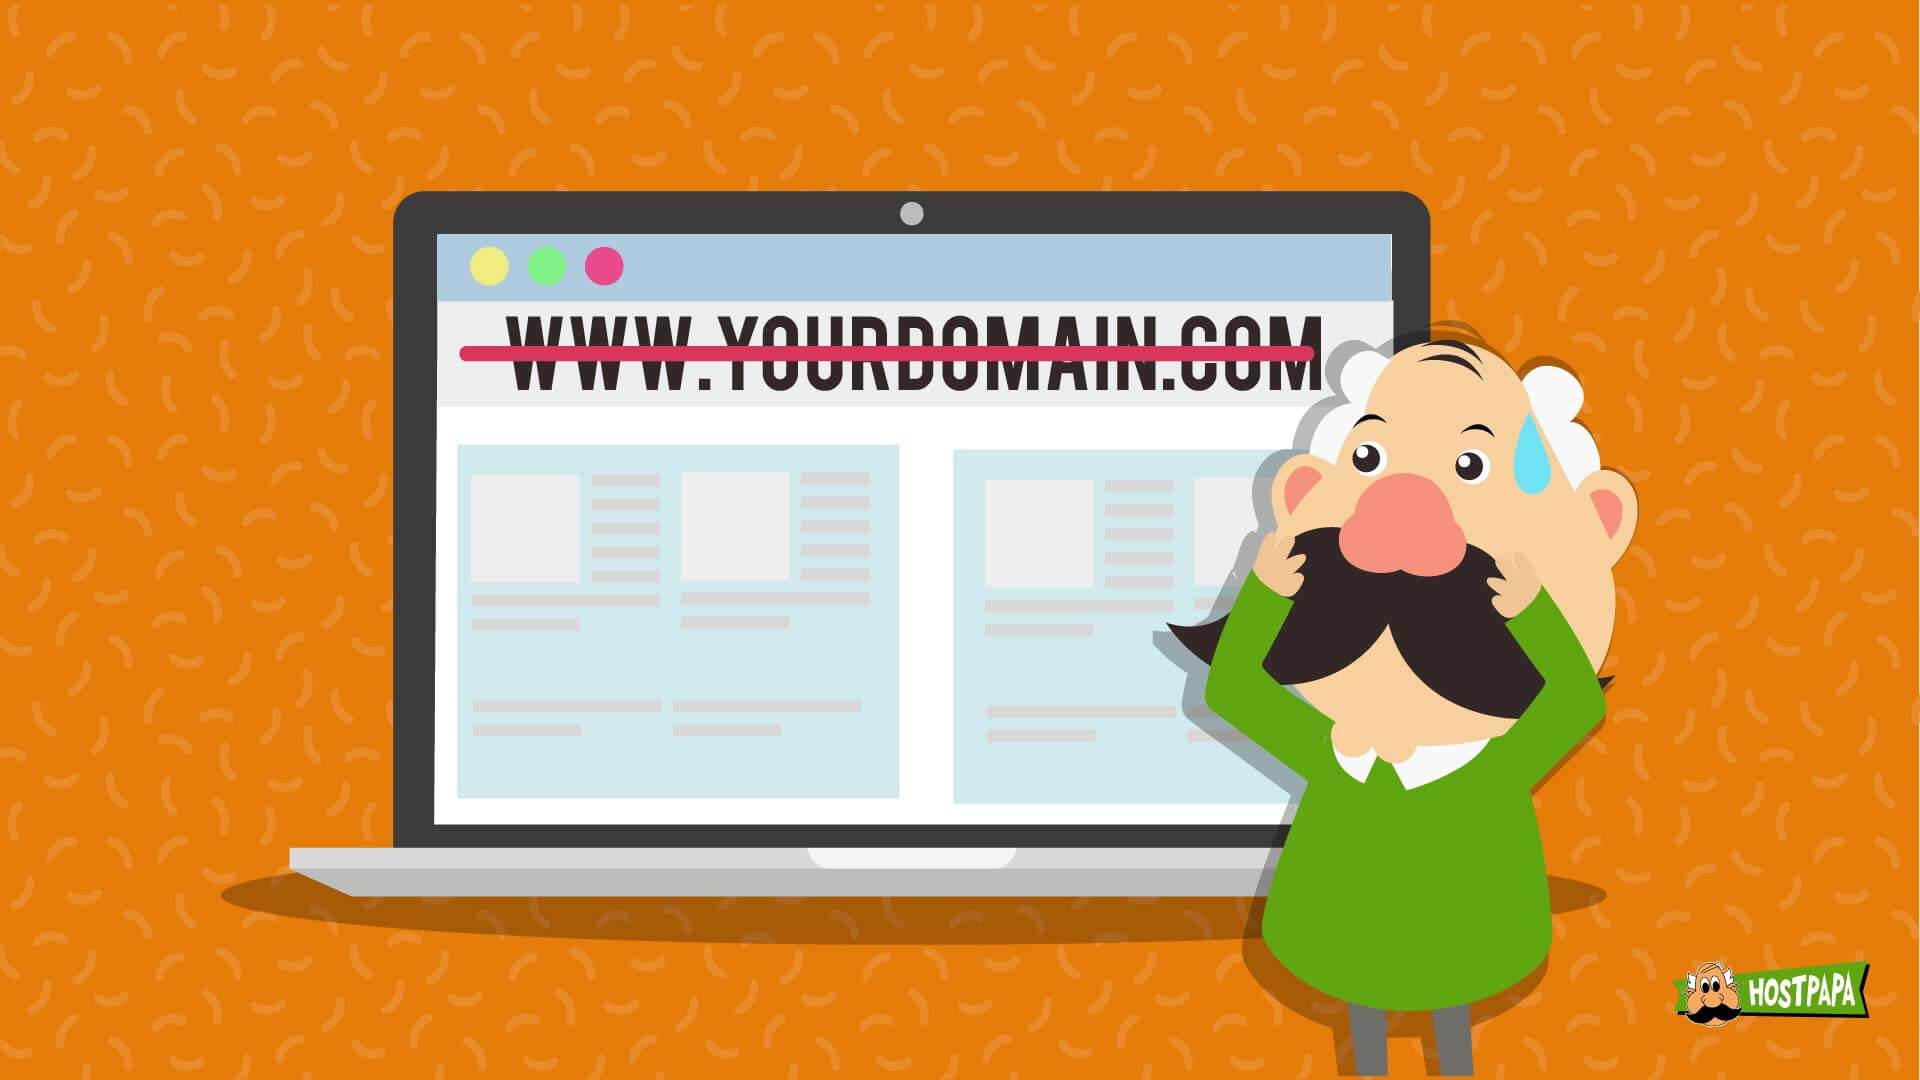 What to do if your domain name is taken